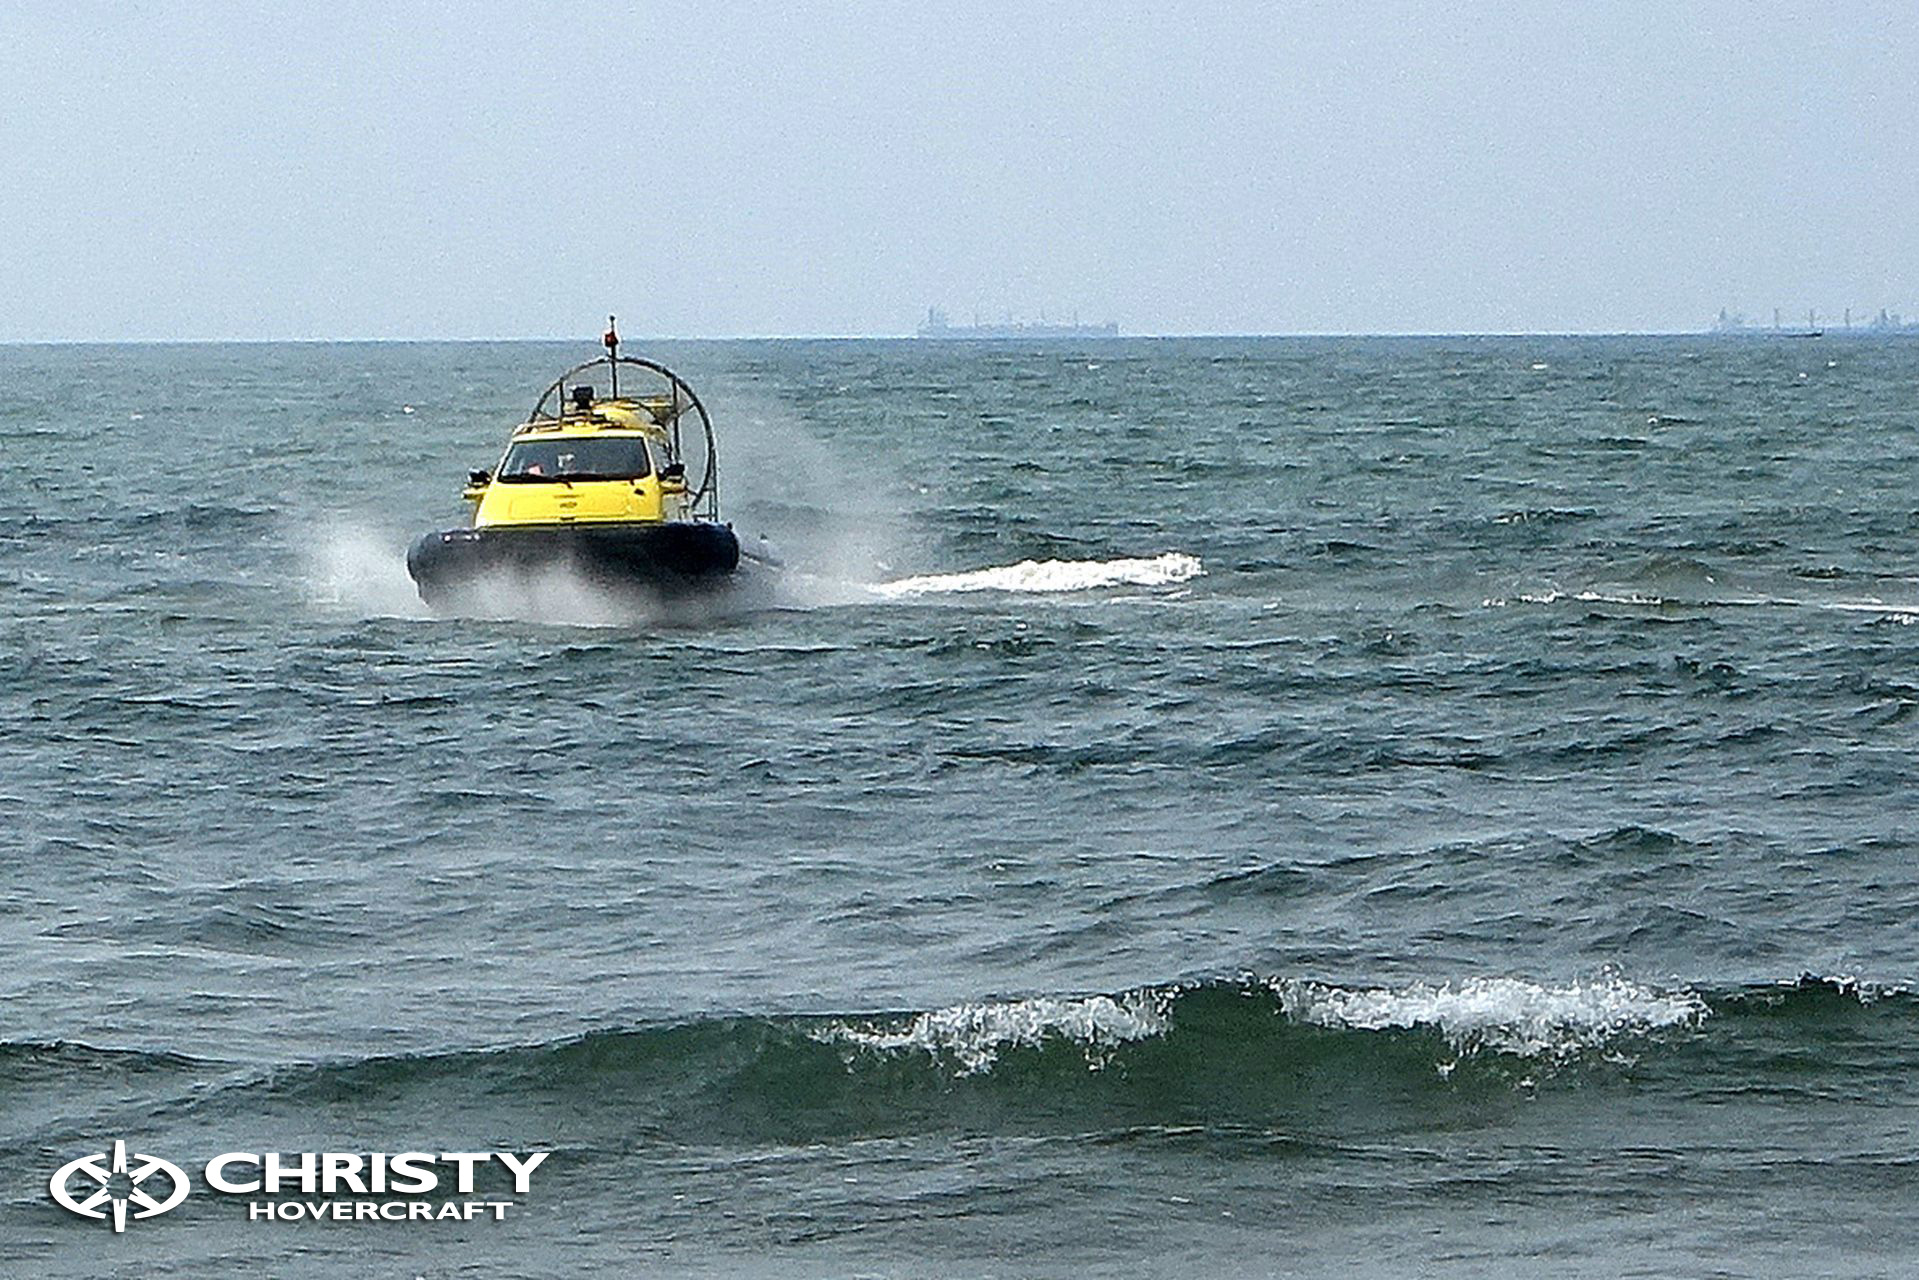 hovercraft-christy-5_7series-28.jpg | фото №35